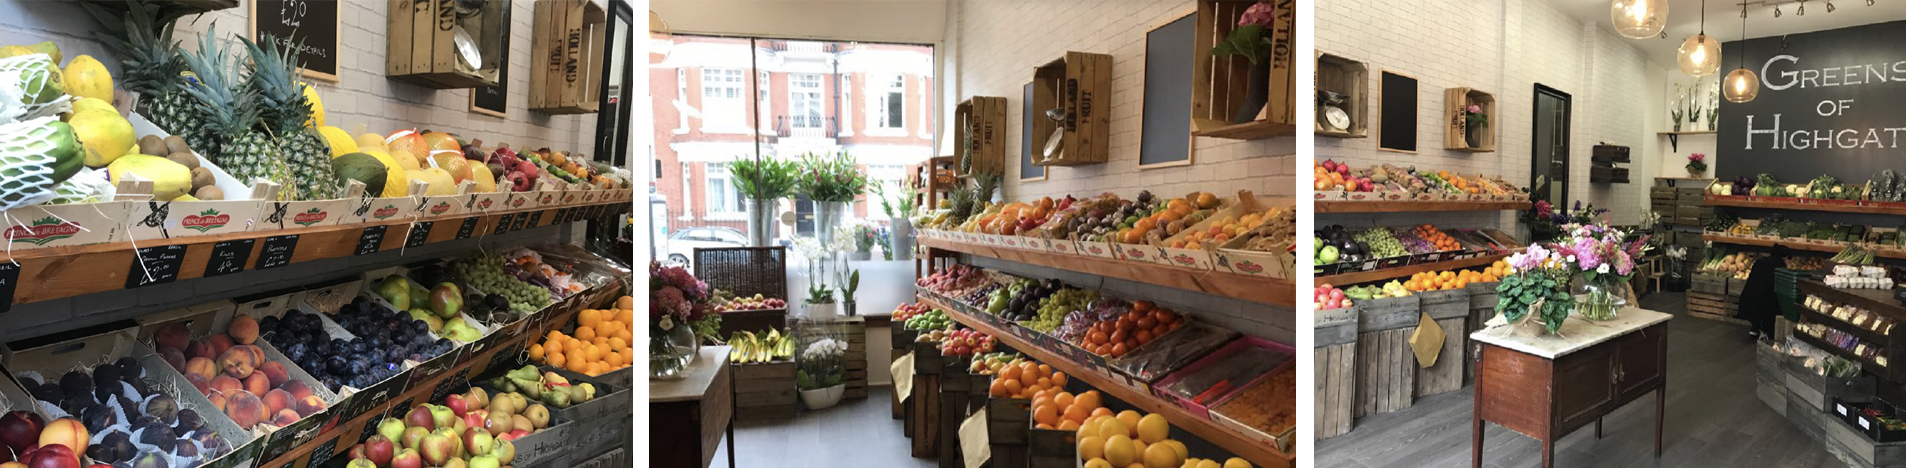 Inside the shop at Greens of Highgate, greengrocers and florists.